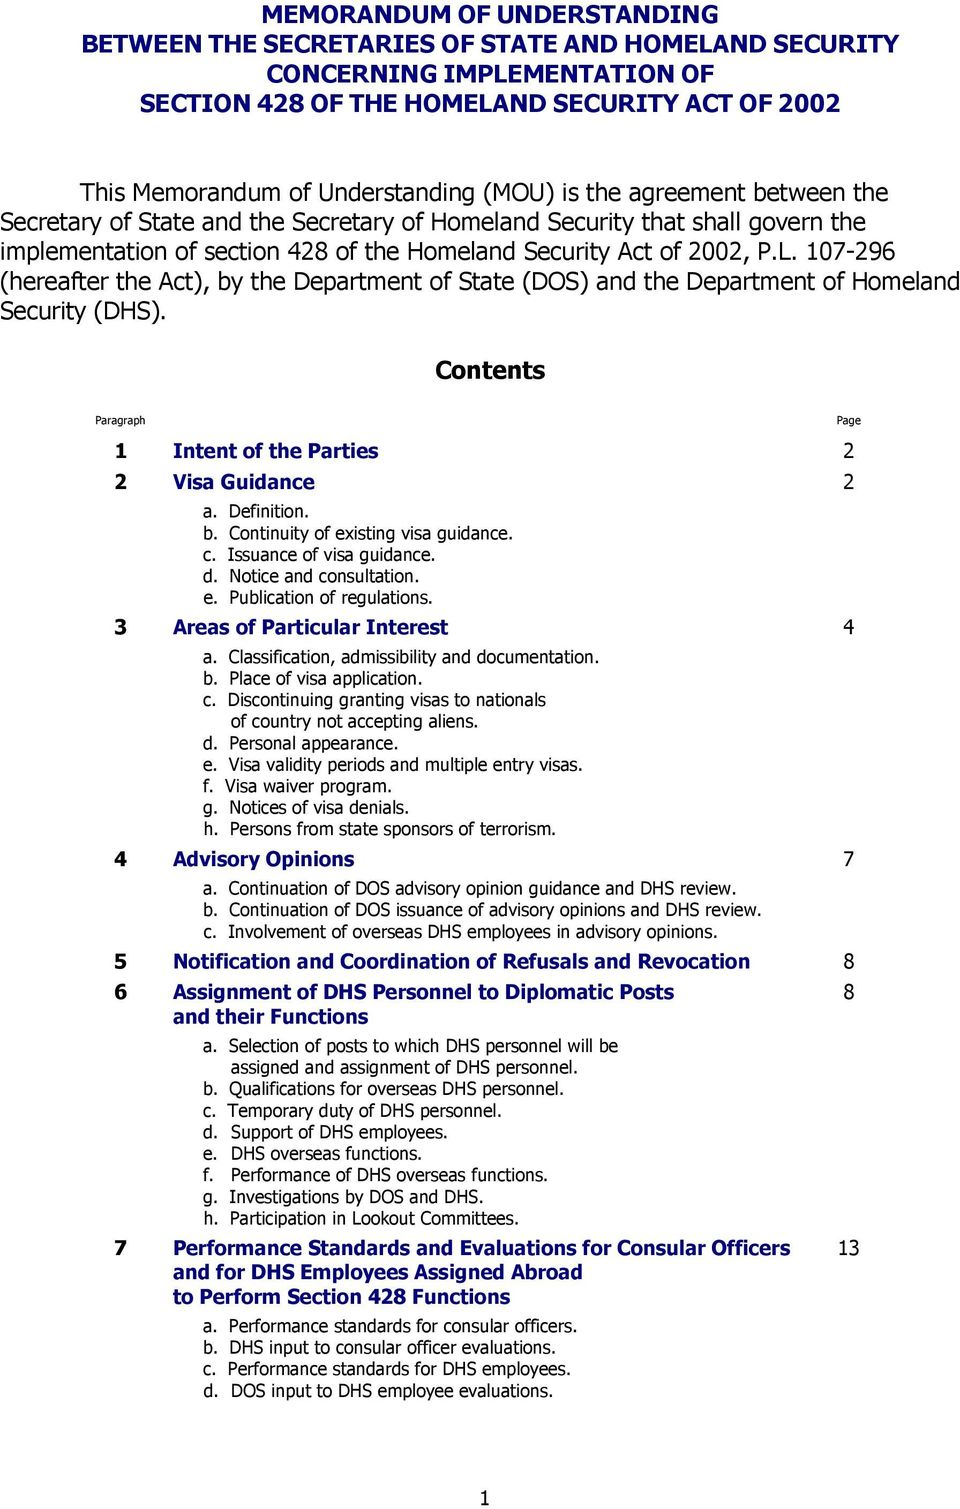 107-296 (hereafter the Act), by the Department of State (DOS) and the Department of Homeland Security (DHS). Contents Paragraph 1 Intent of the Parties 2 2 Visa Guidance 2 a. Definition. b. Continuity of existing visa guidance.